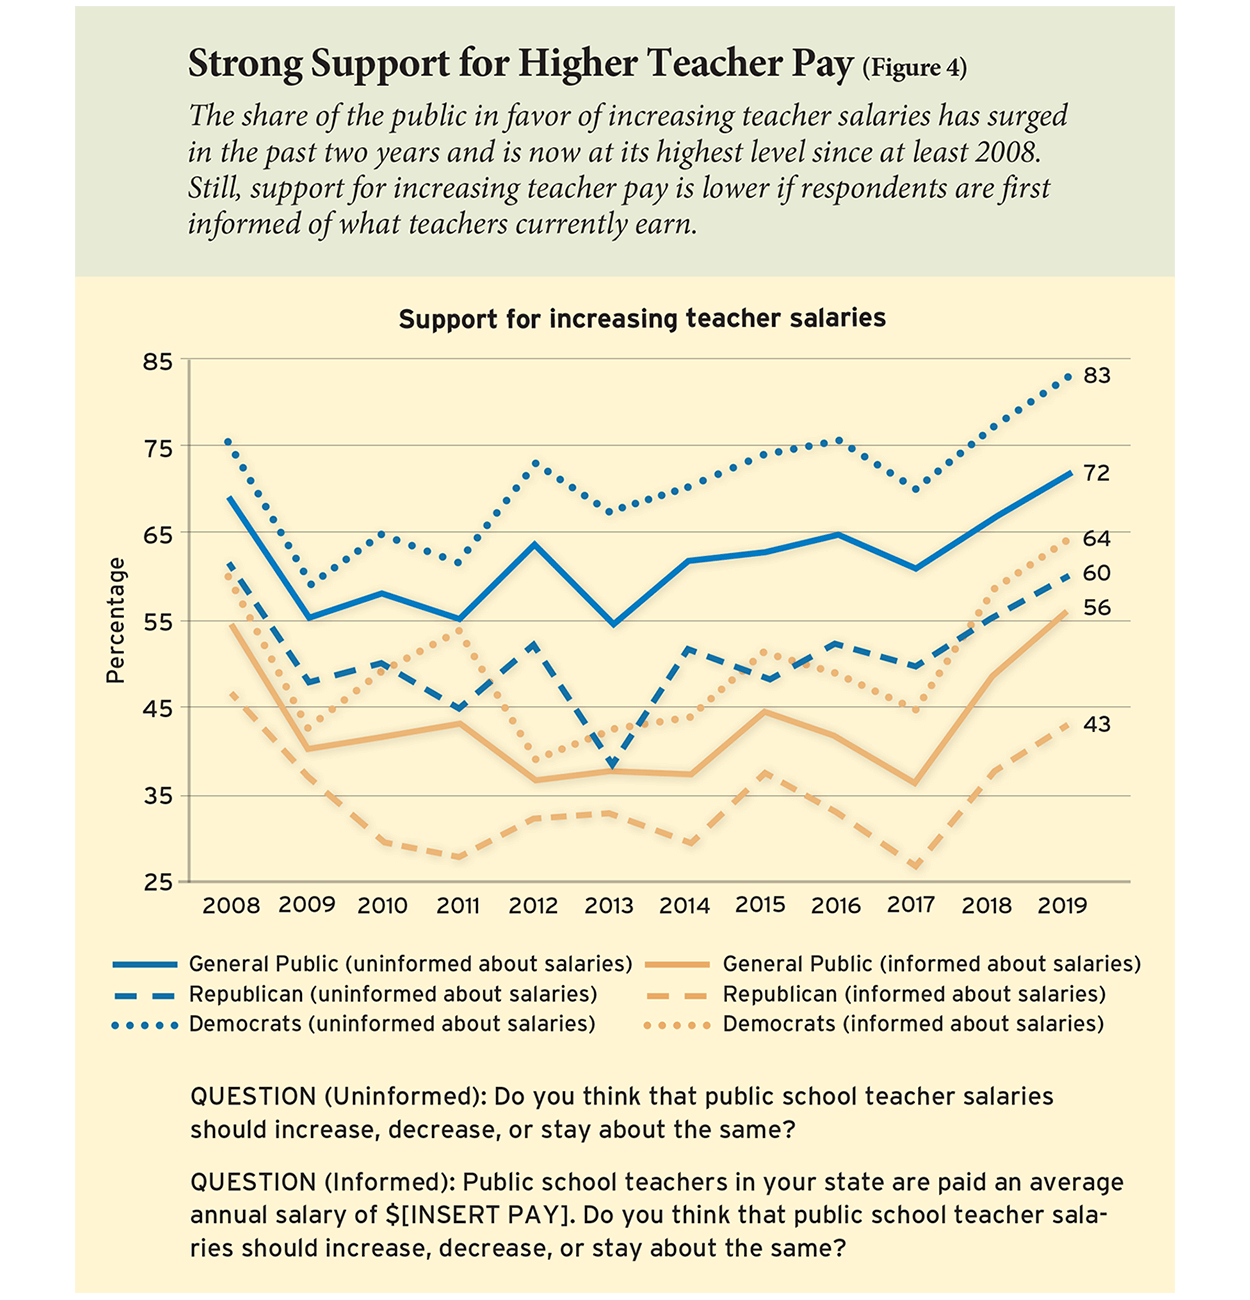 Strong Support for Higher Teacher Pay (Figure 4)